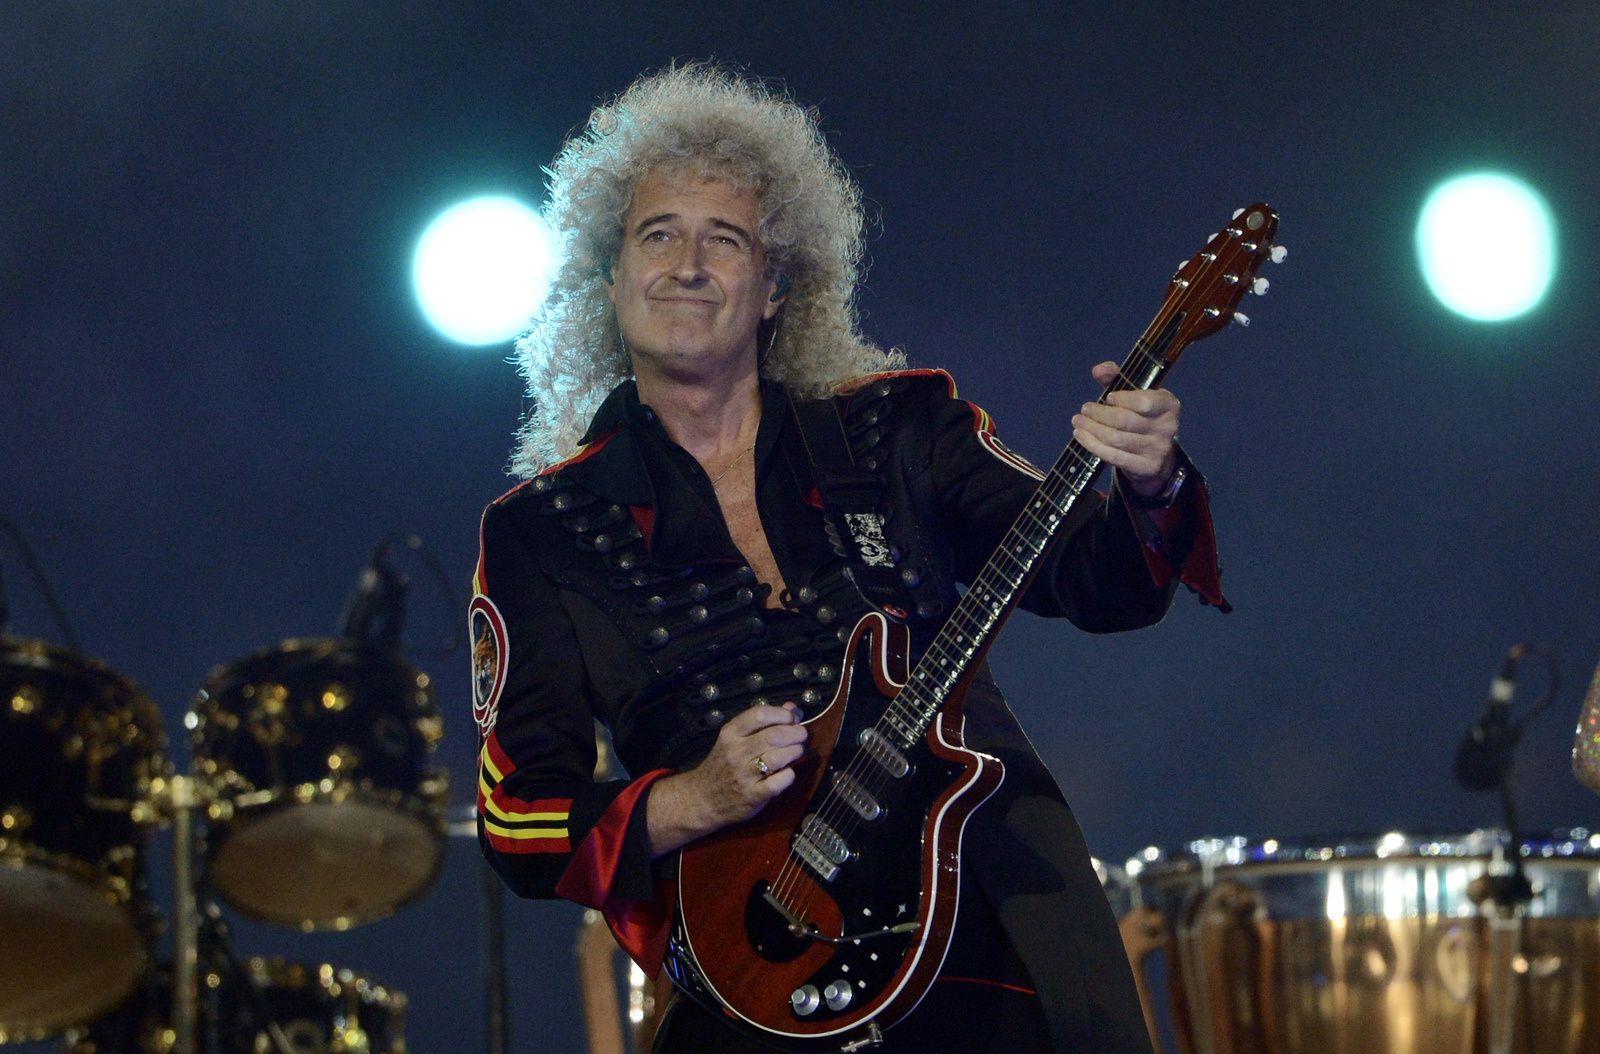 Brian May - 2012 - From the Closing Ceremony of the London Olympic Games